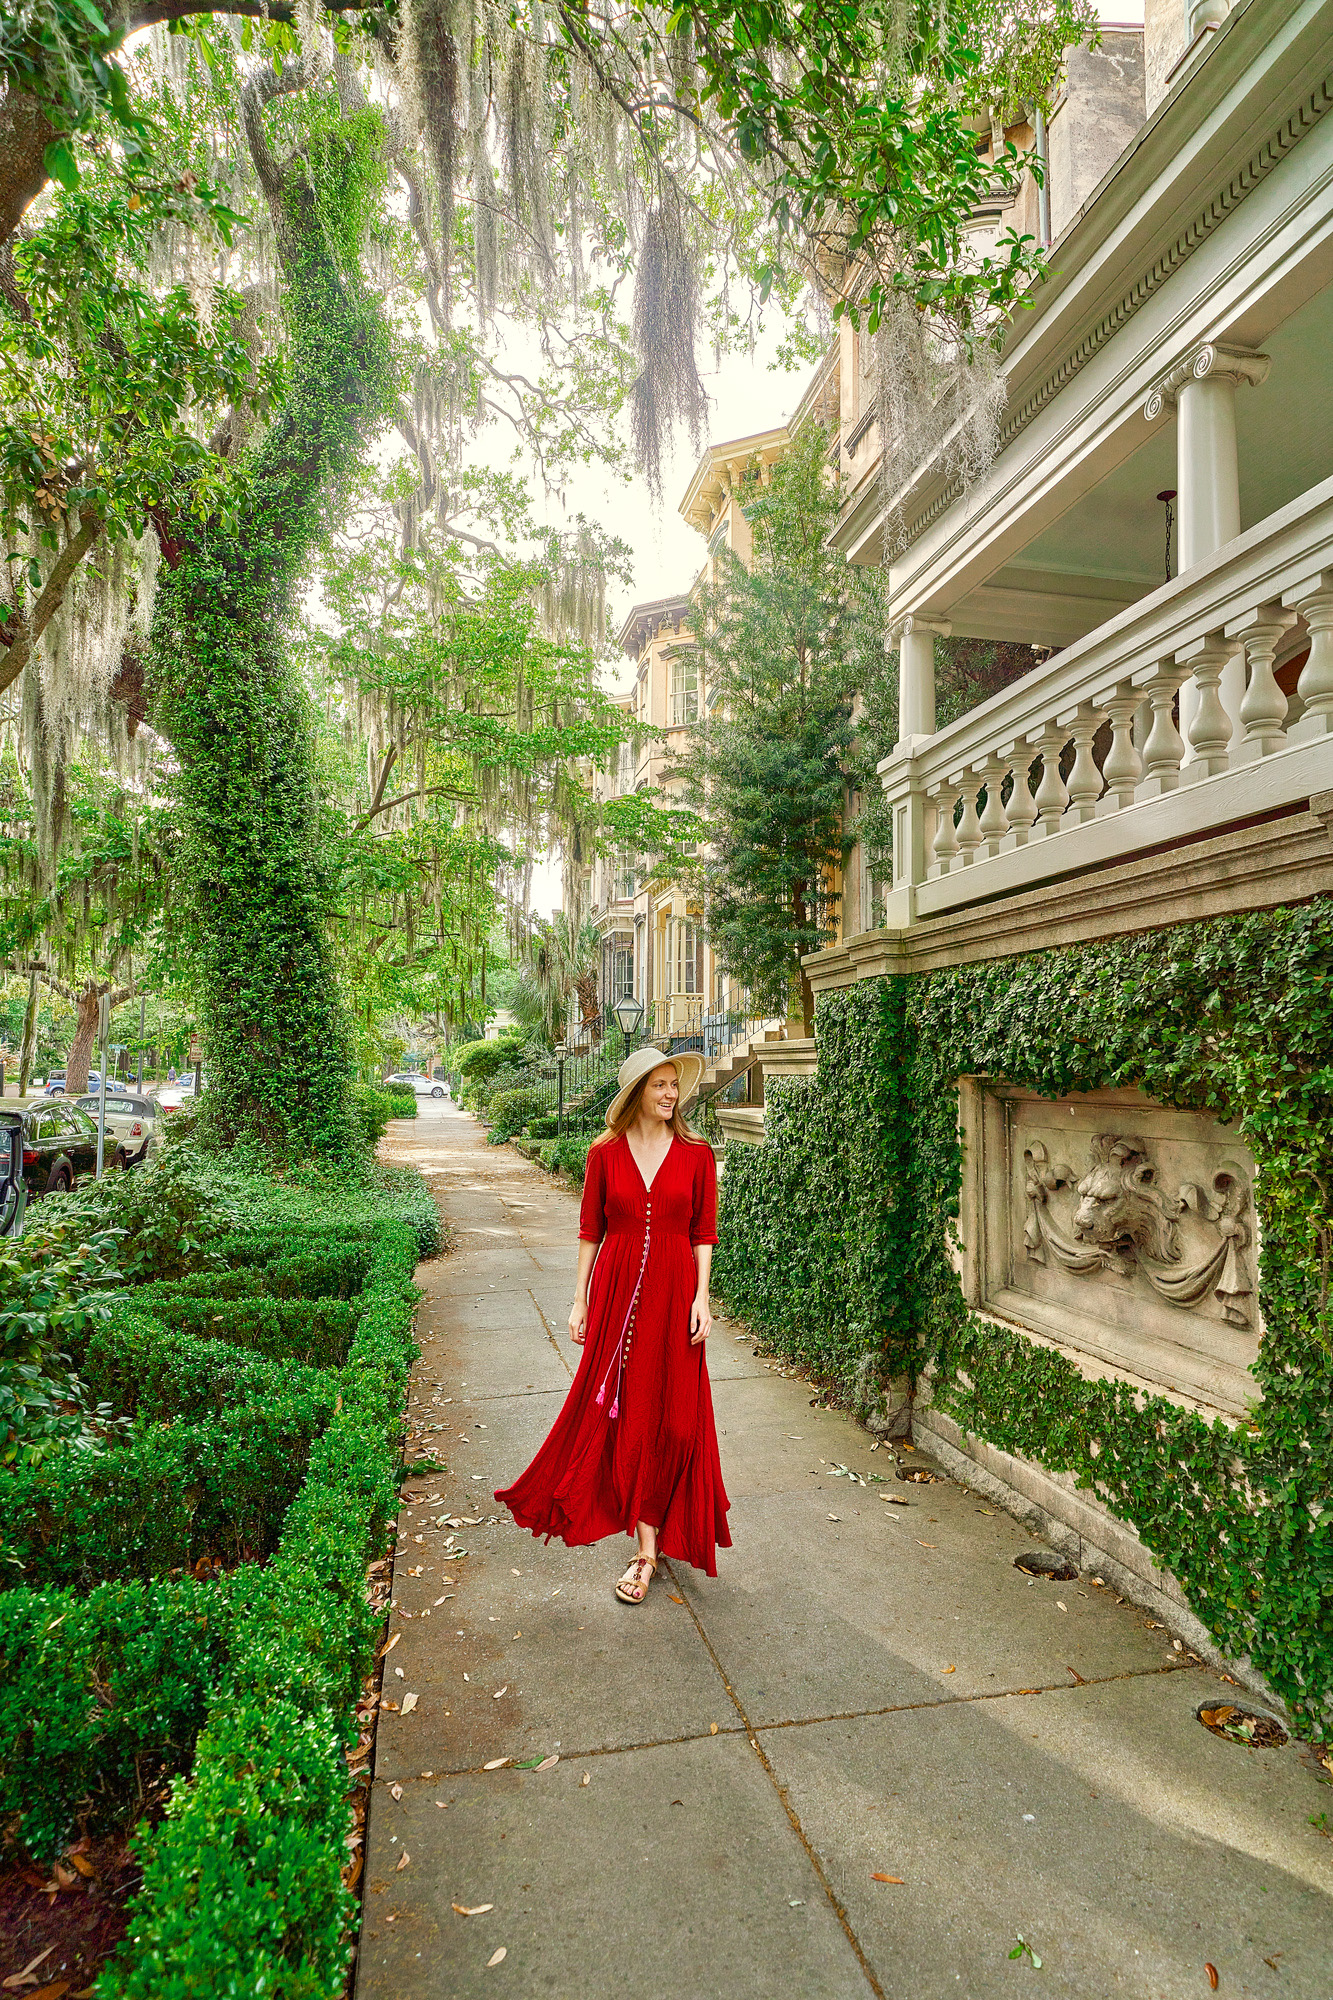 A woman in a red dress standing on the sidewalk of a beautiful street in Savannah. One side of the sidewalk is lined with historic homes covered in ivy and other greenery. The other side has trees and boxwood shrubs